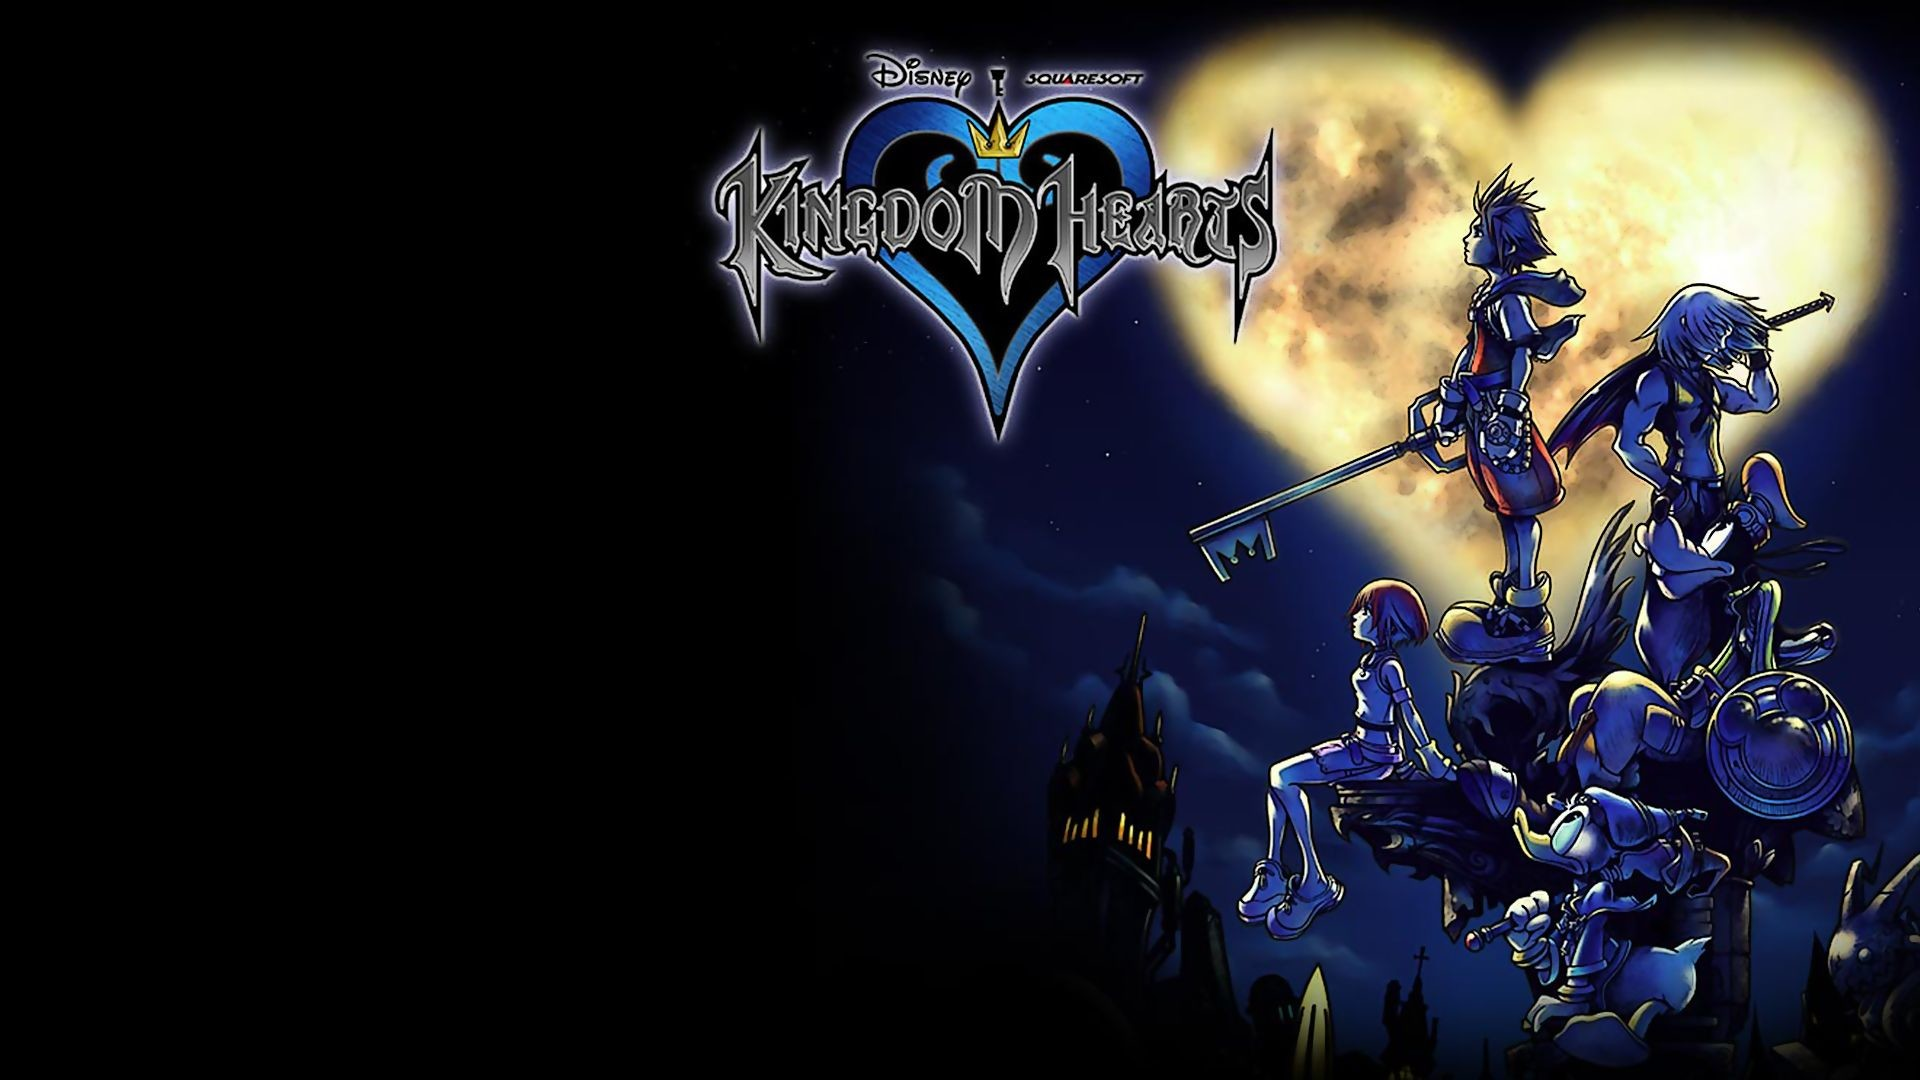 Res: 1920x1080, Kingdom Hearts Wallpaper Hd Resolution